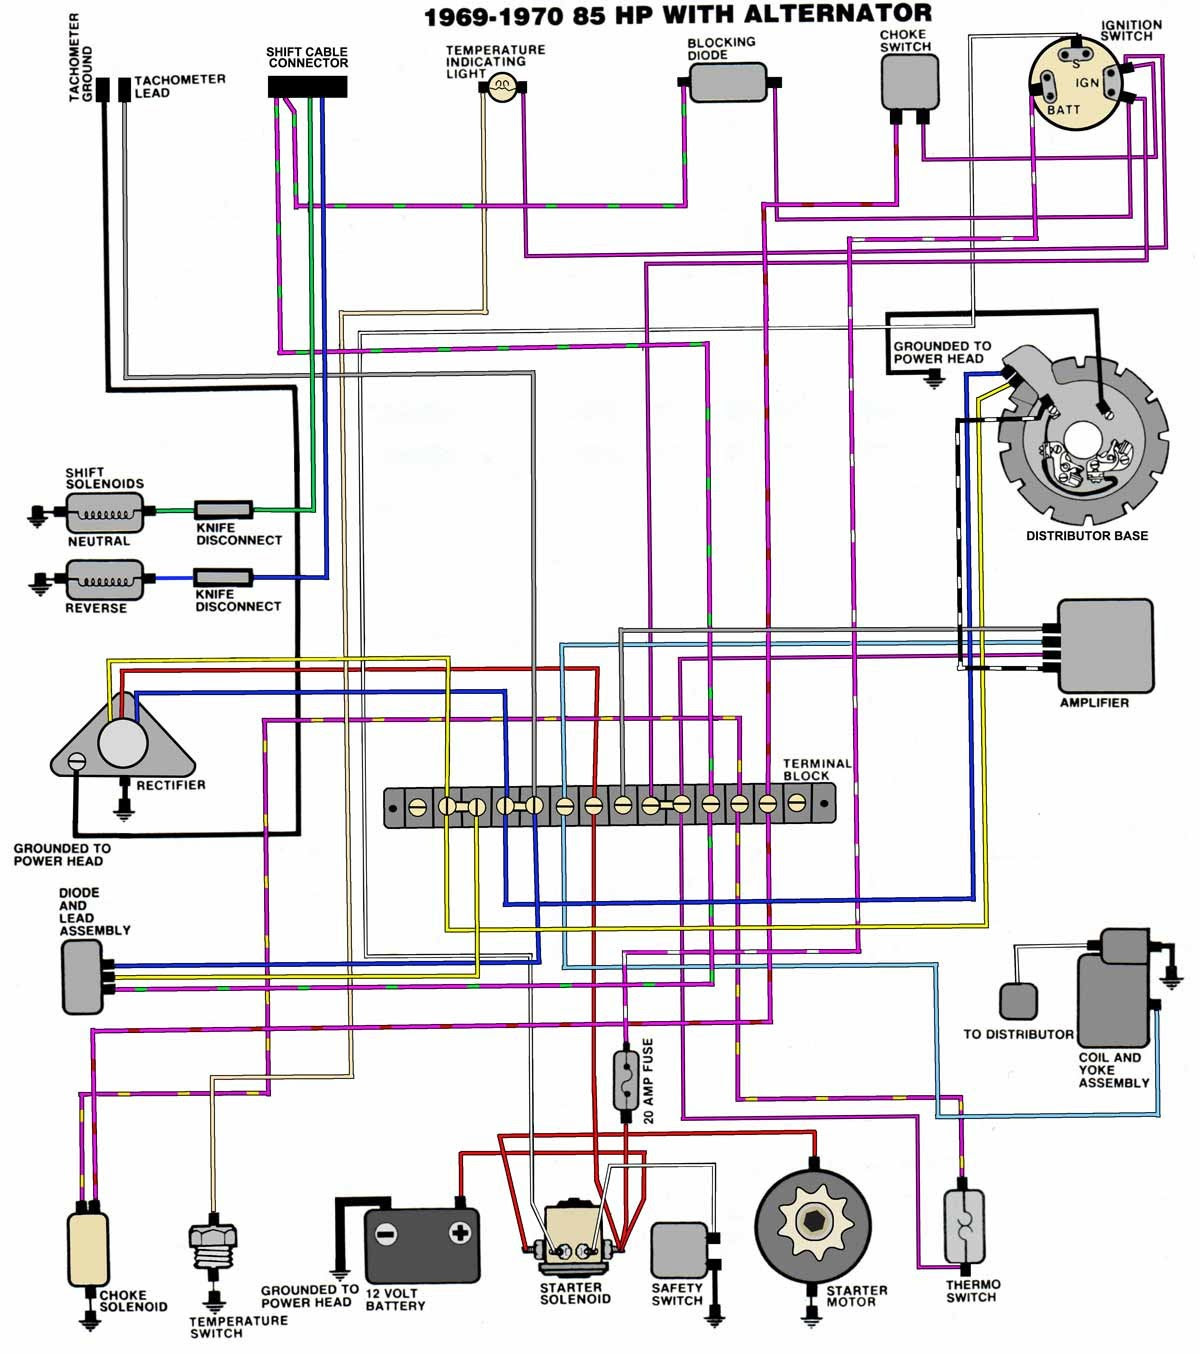 35 Hp Johnson Outboard Wiring Diagram